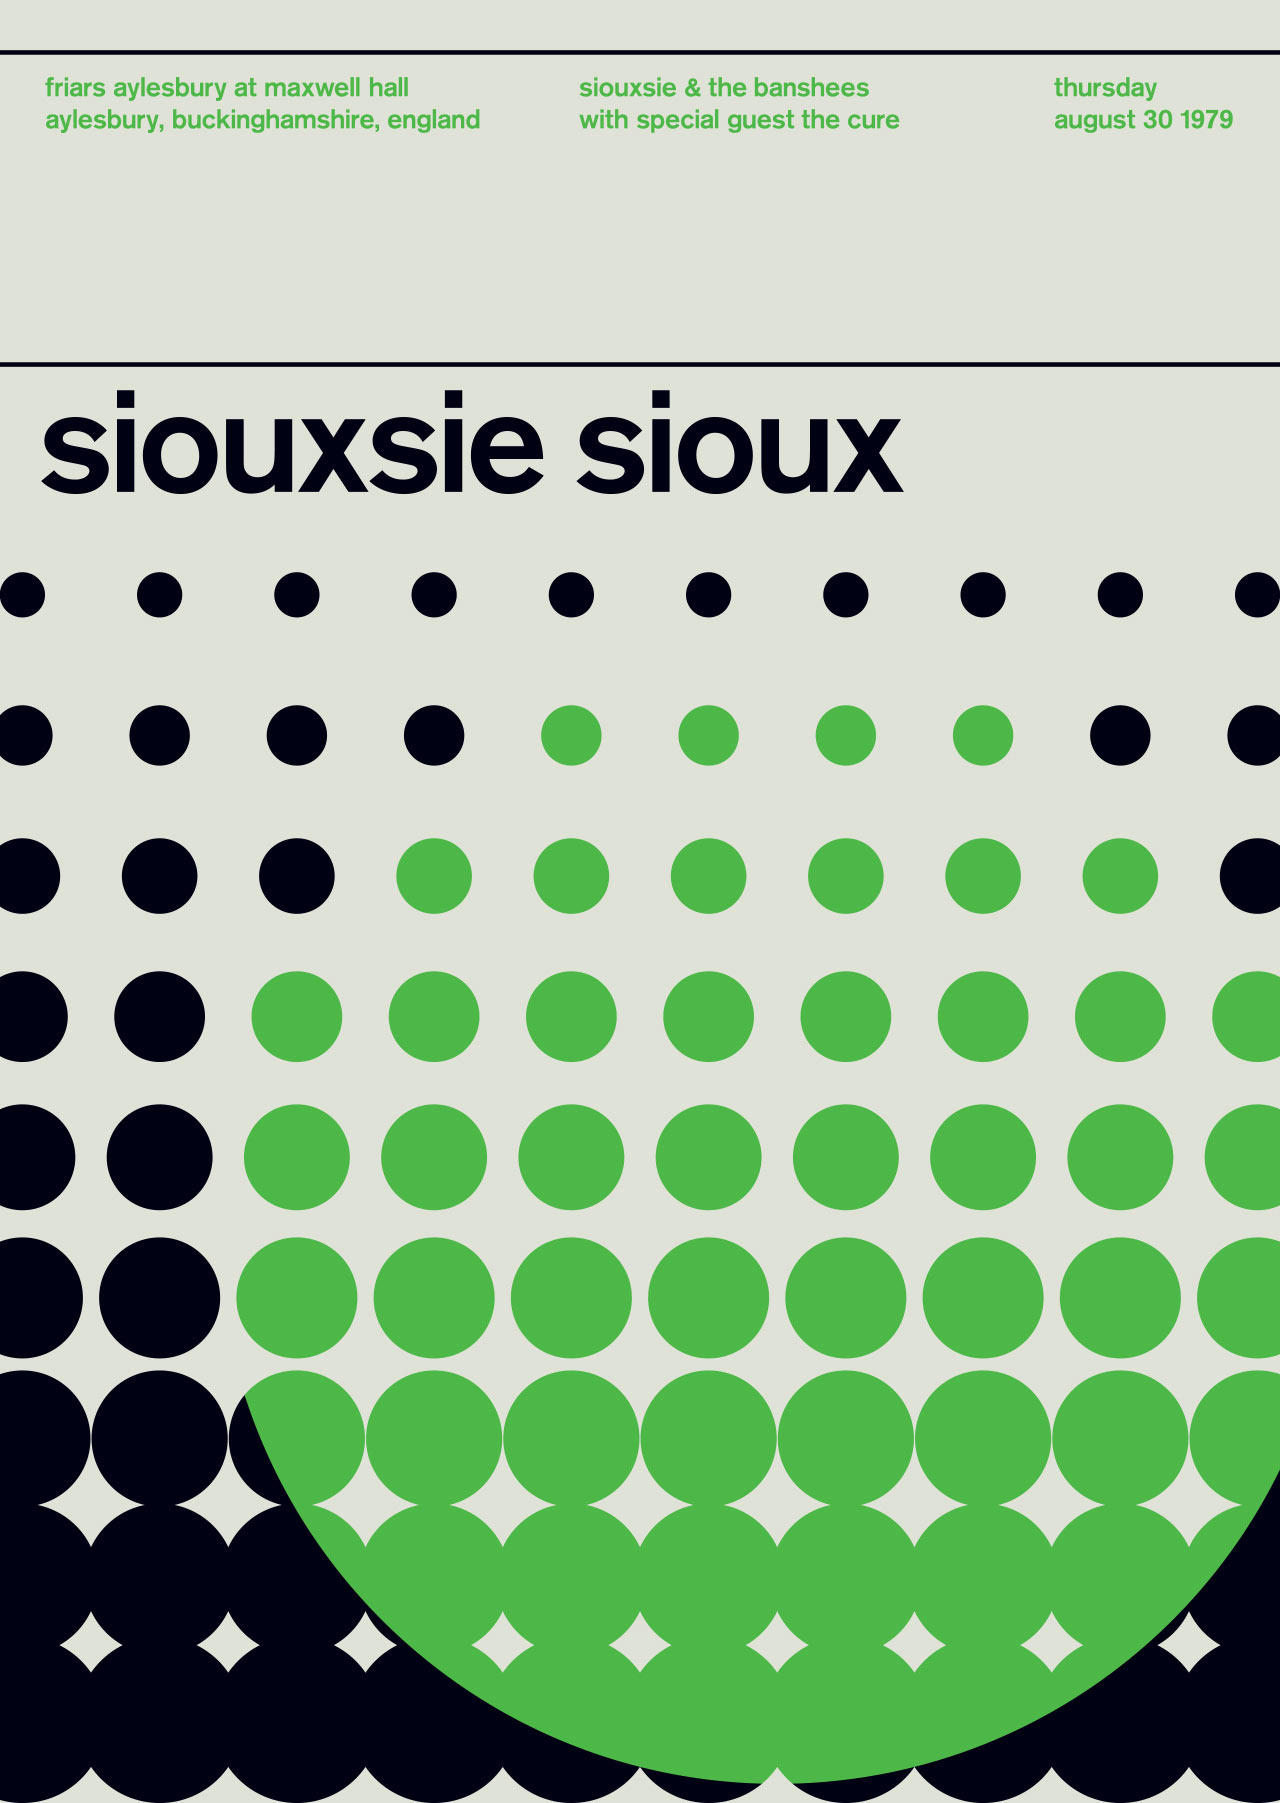 Swissted-Legends_Posters-12-sioxsie_sioux_legends_series